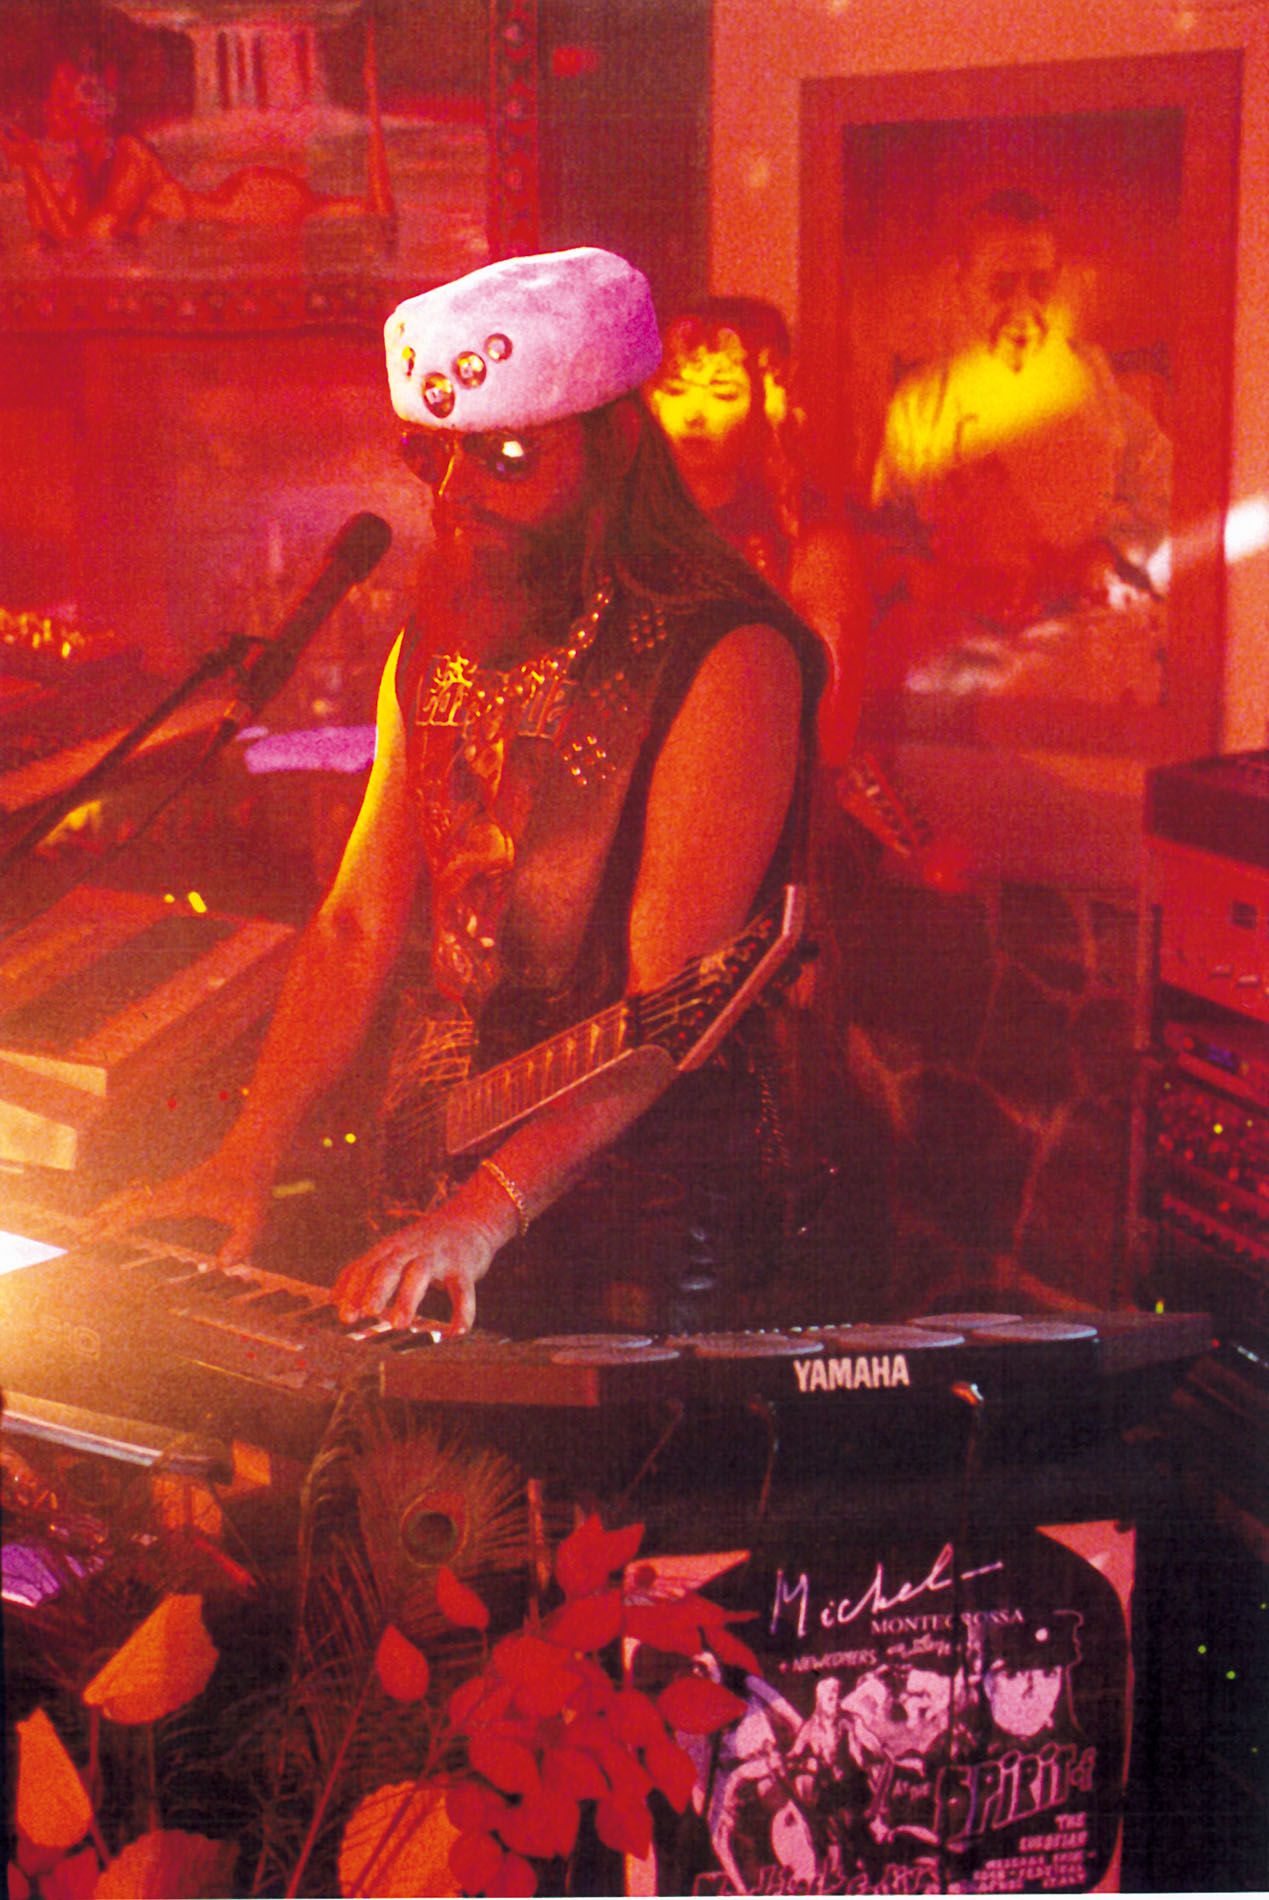 Michel Montecrossa on keyboards